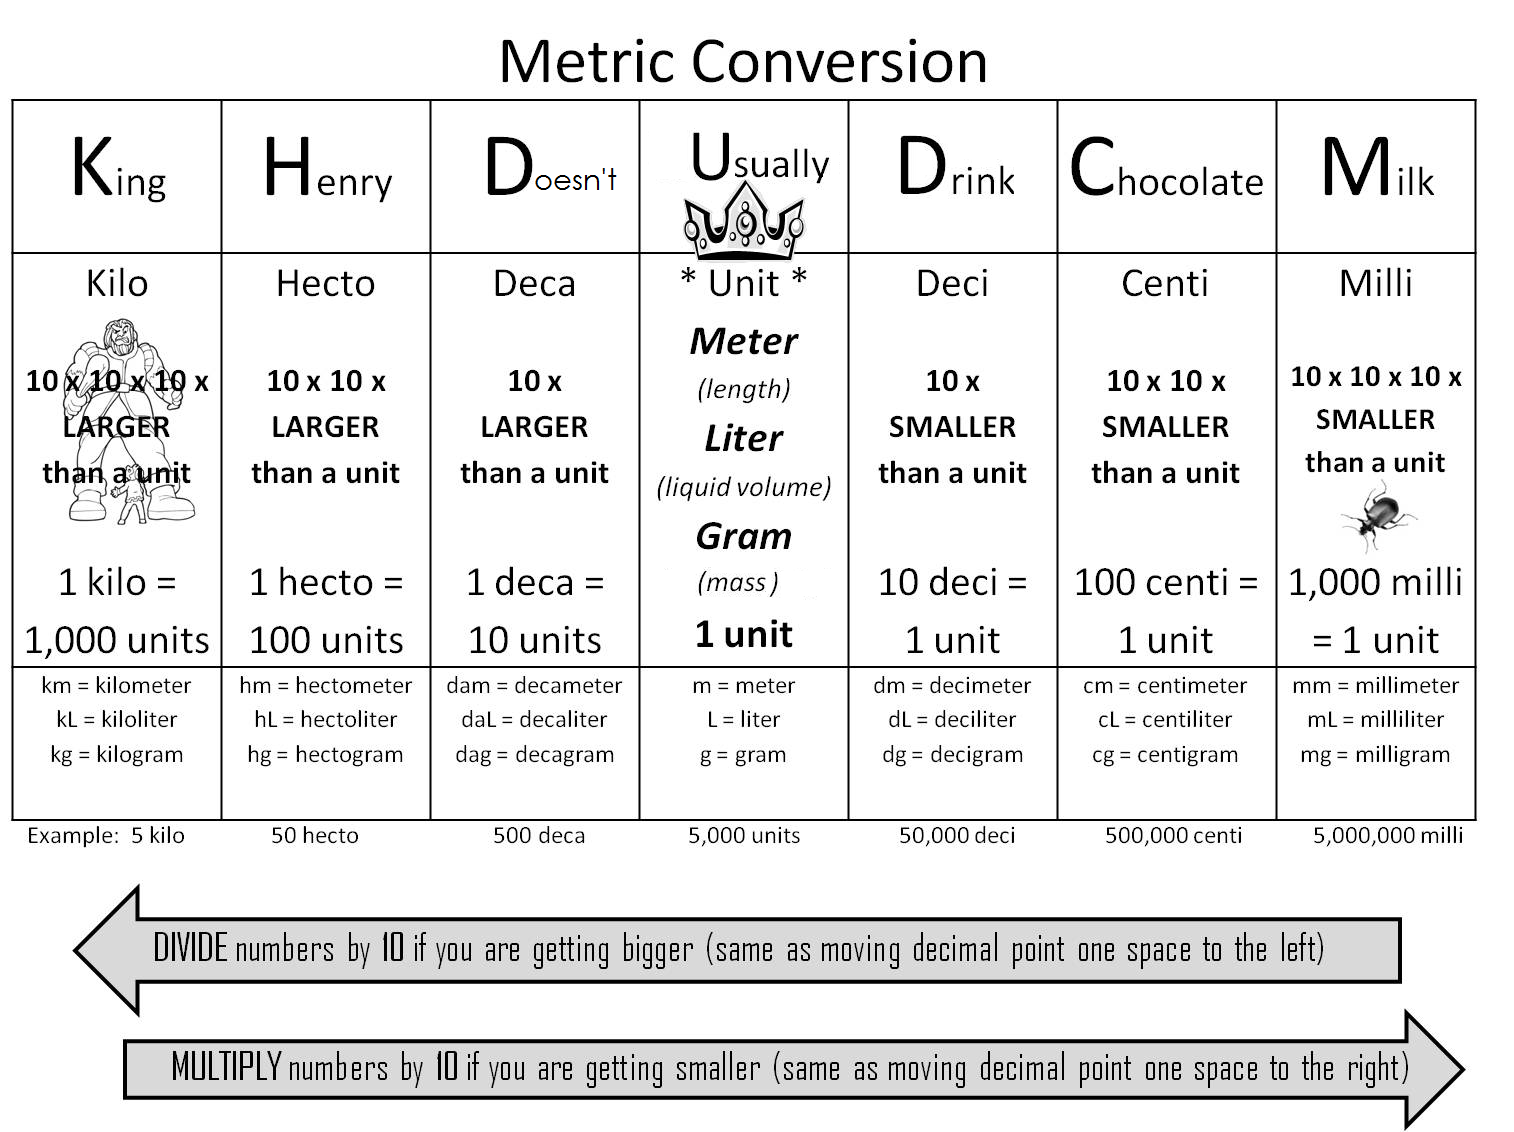 Metric conversions motivation pinterest math school and math metric conversion trick using king henry died unusually drinking chocolate milk this simplifies the whole metric conversion process and makes it nvjuhfo Images